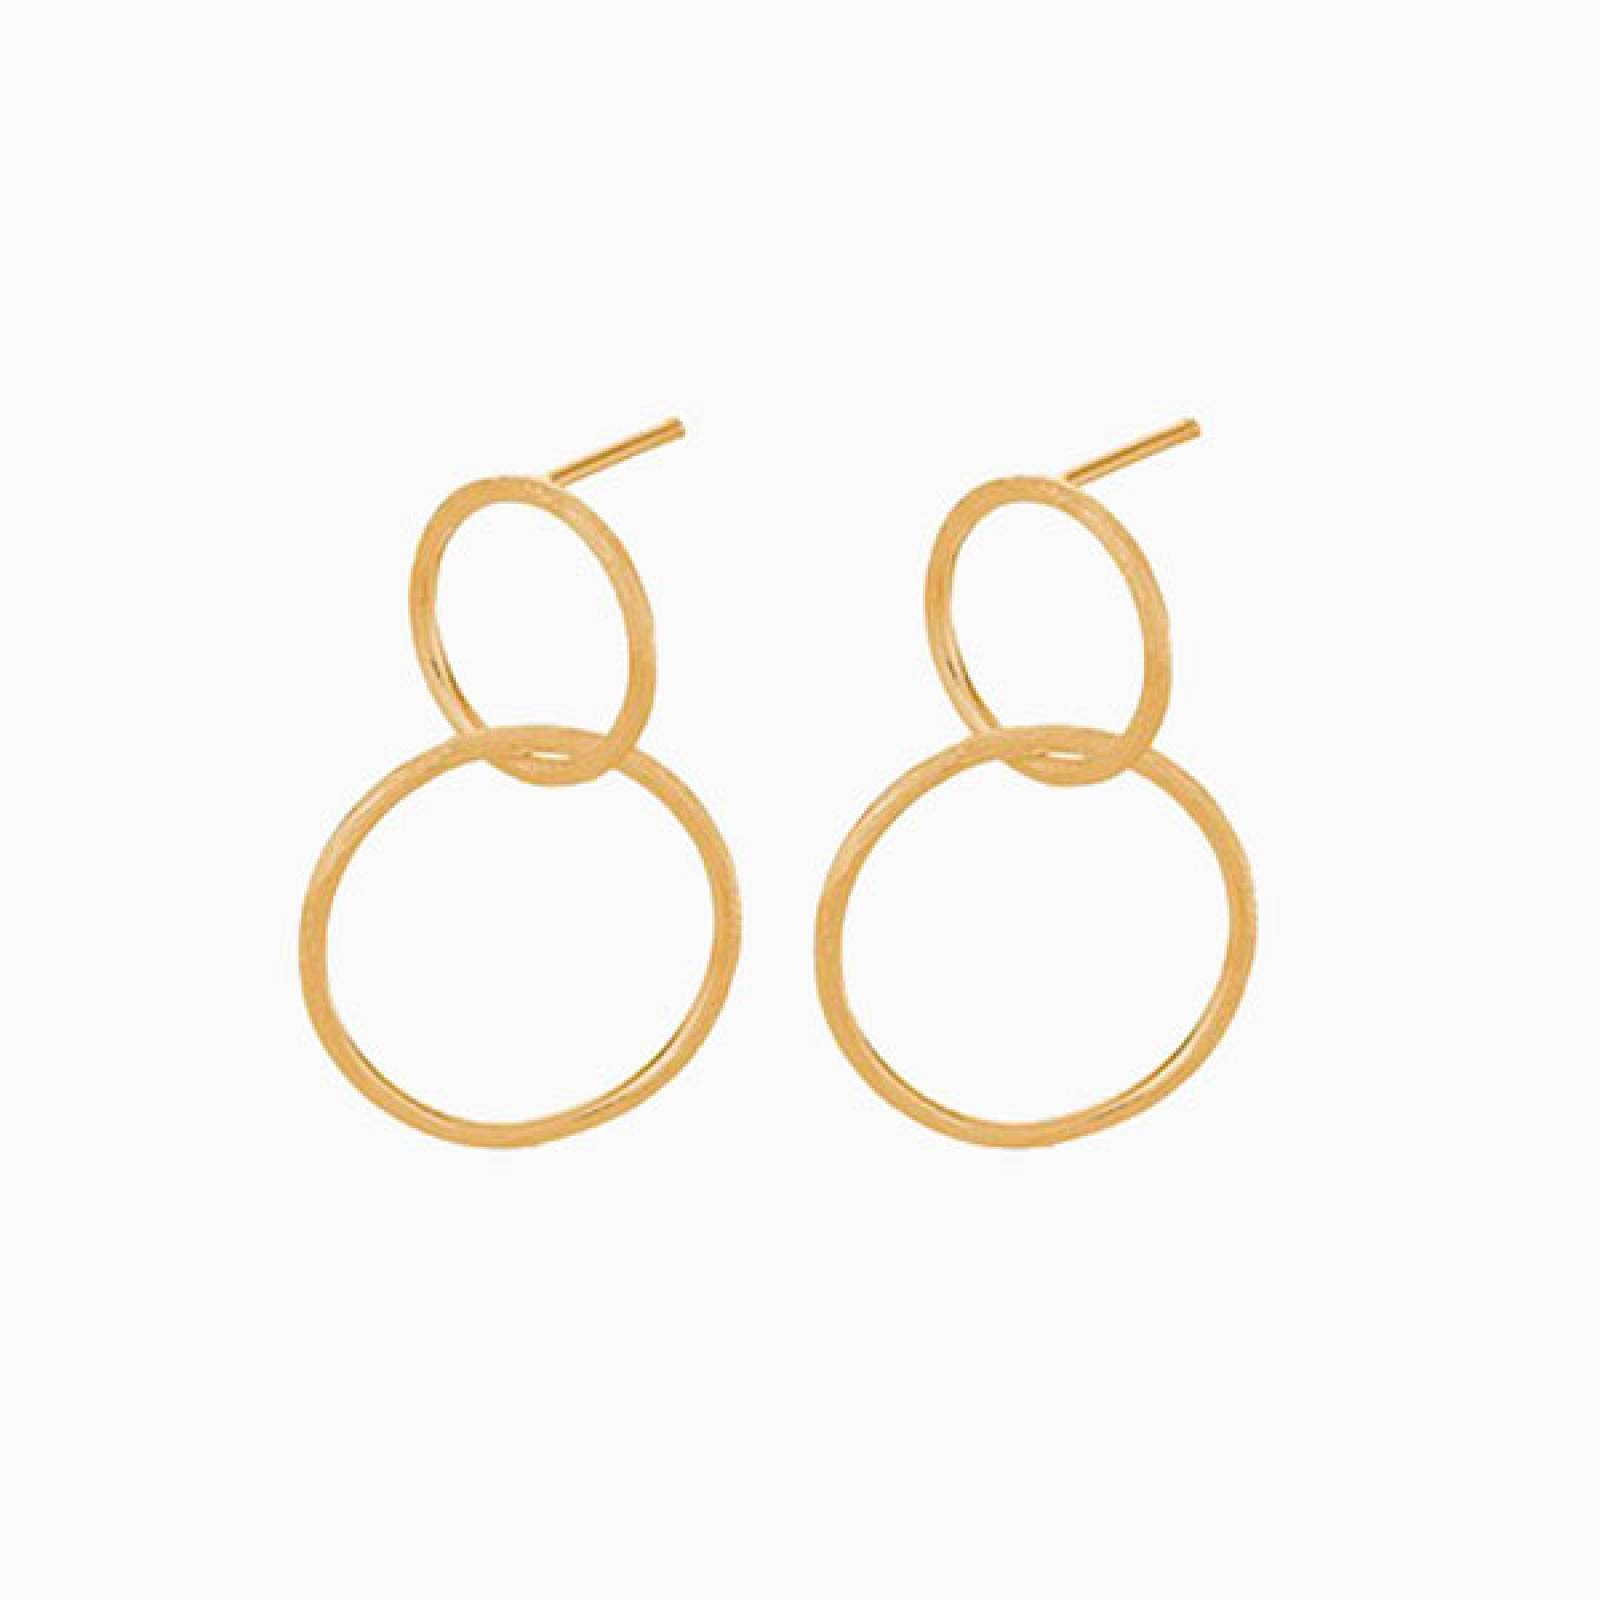 Gold Interlocking Hoop Earrings By Pernille Corydon thumbnails